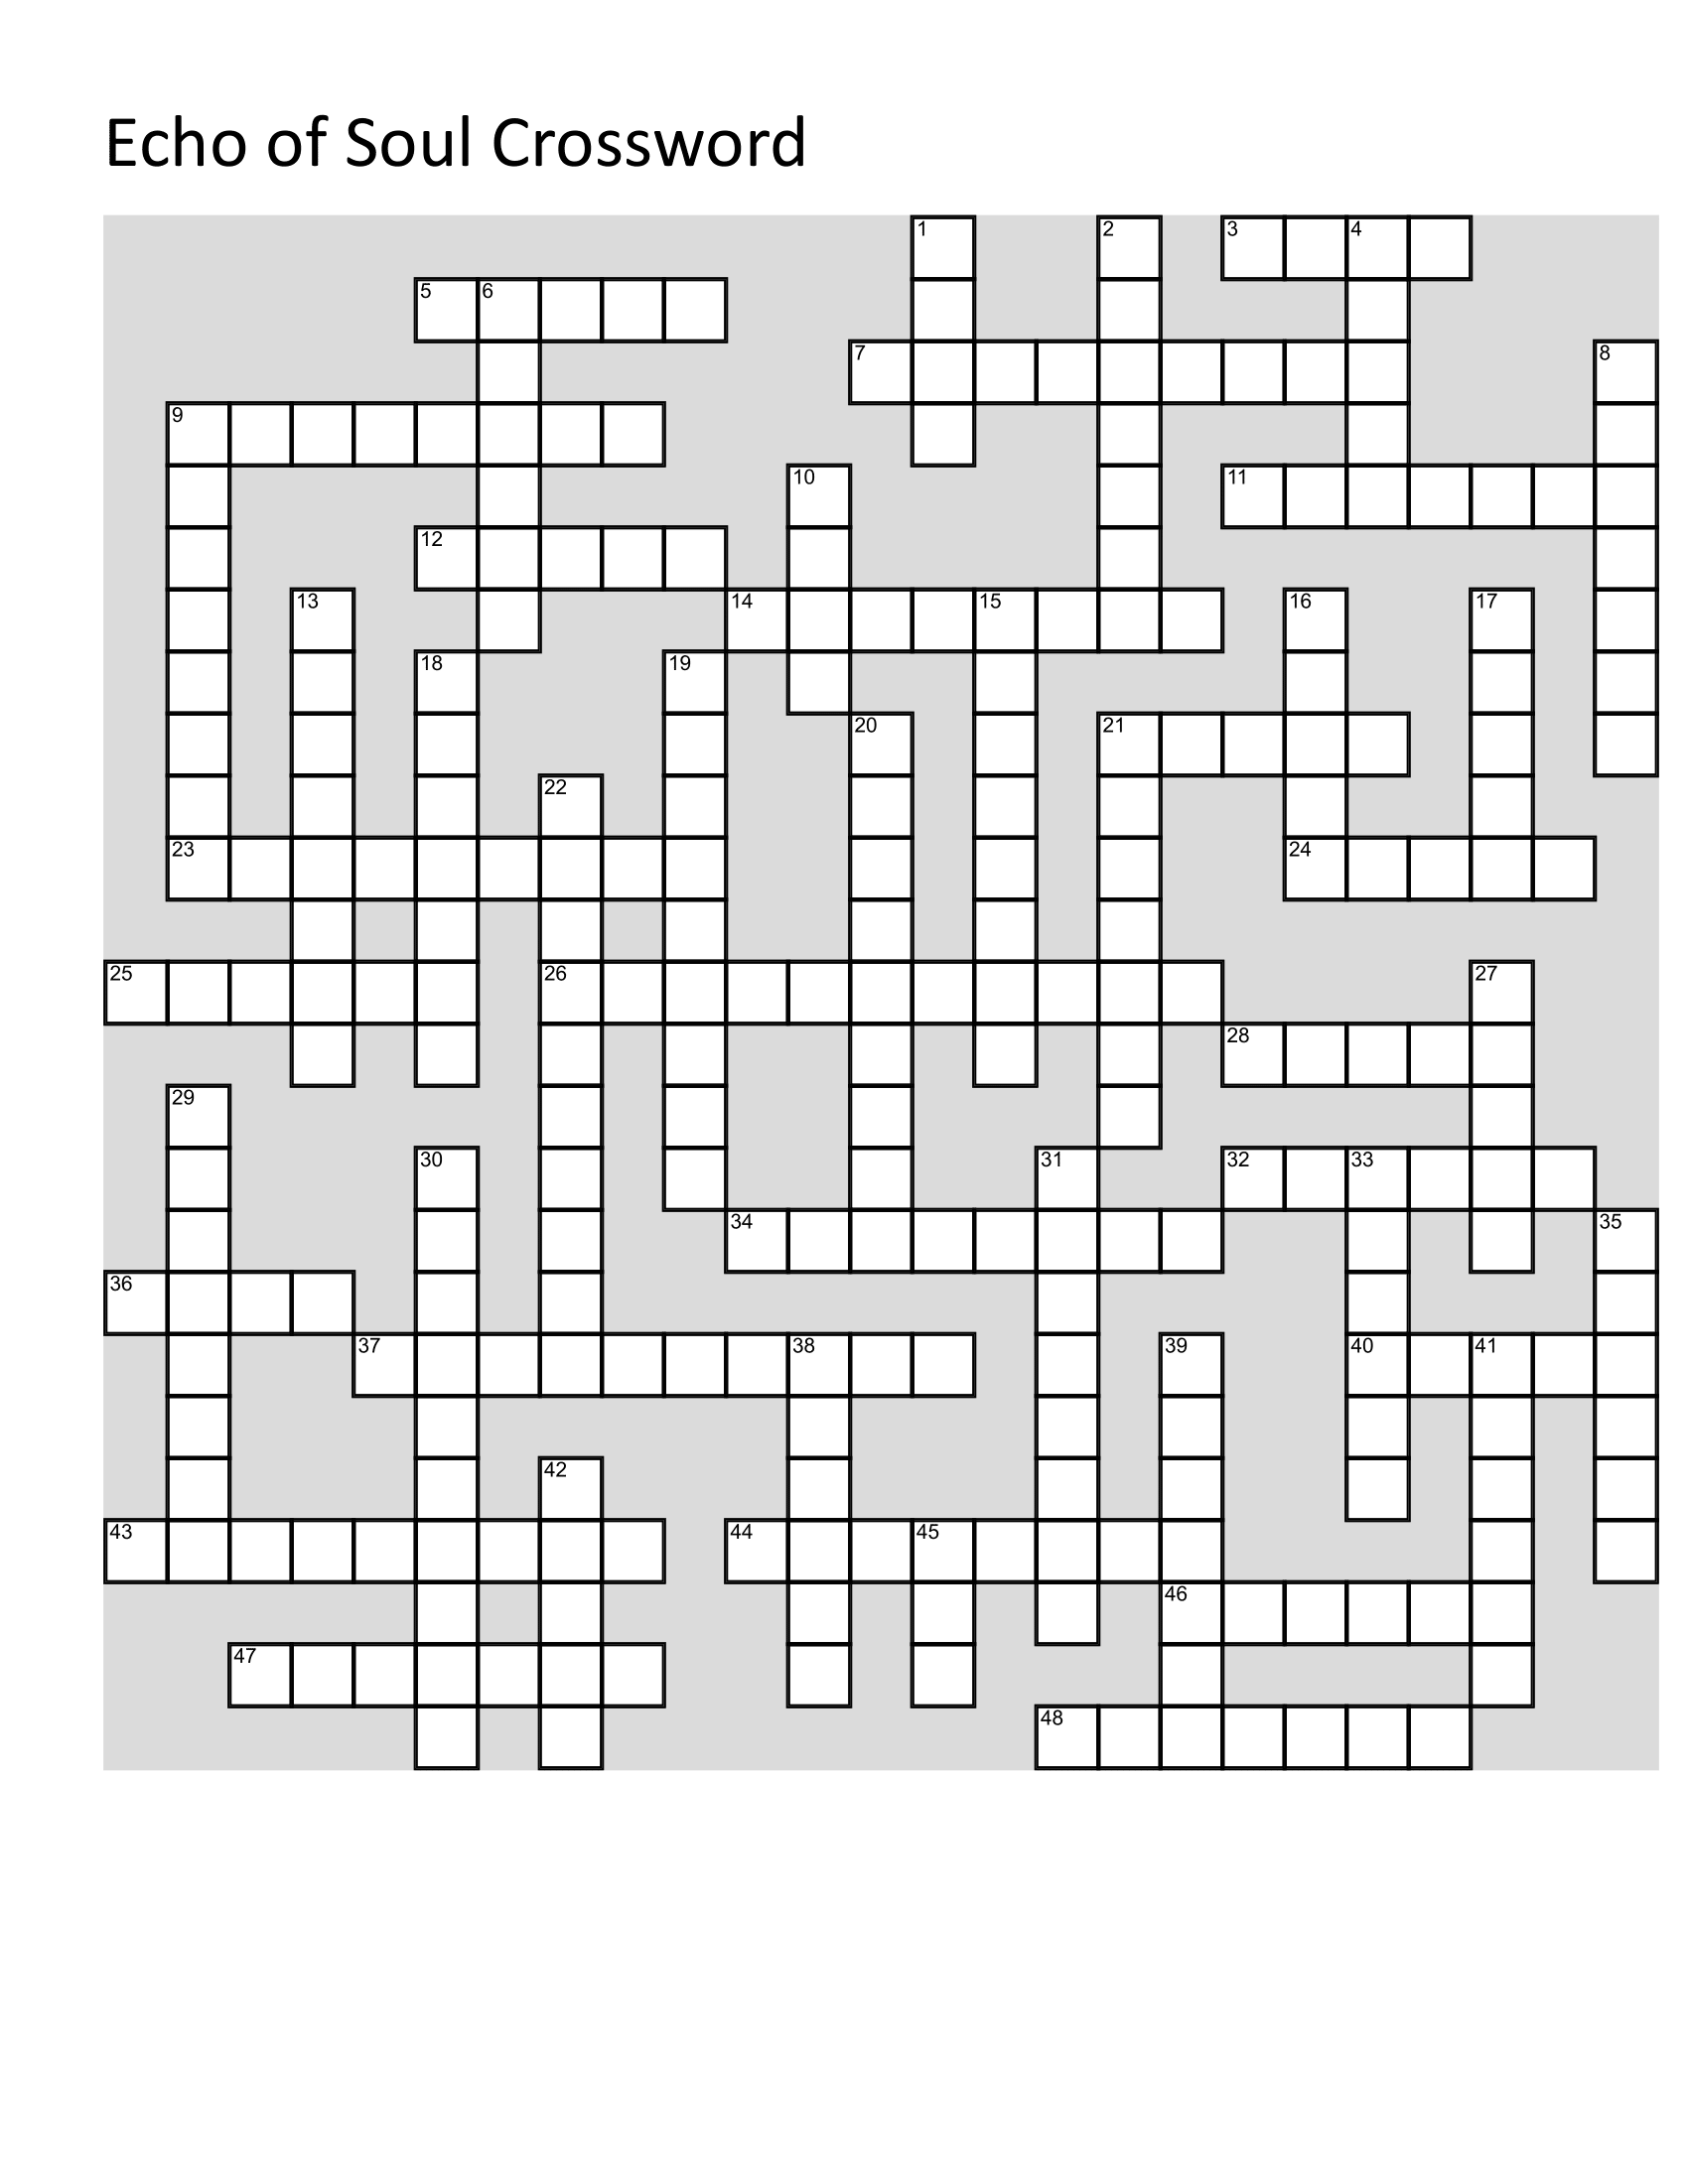 EoS-Crossword-Apr-EN.png